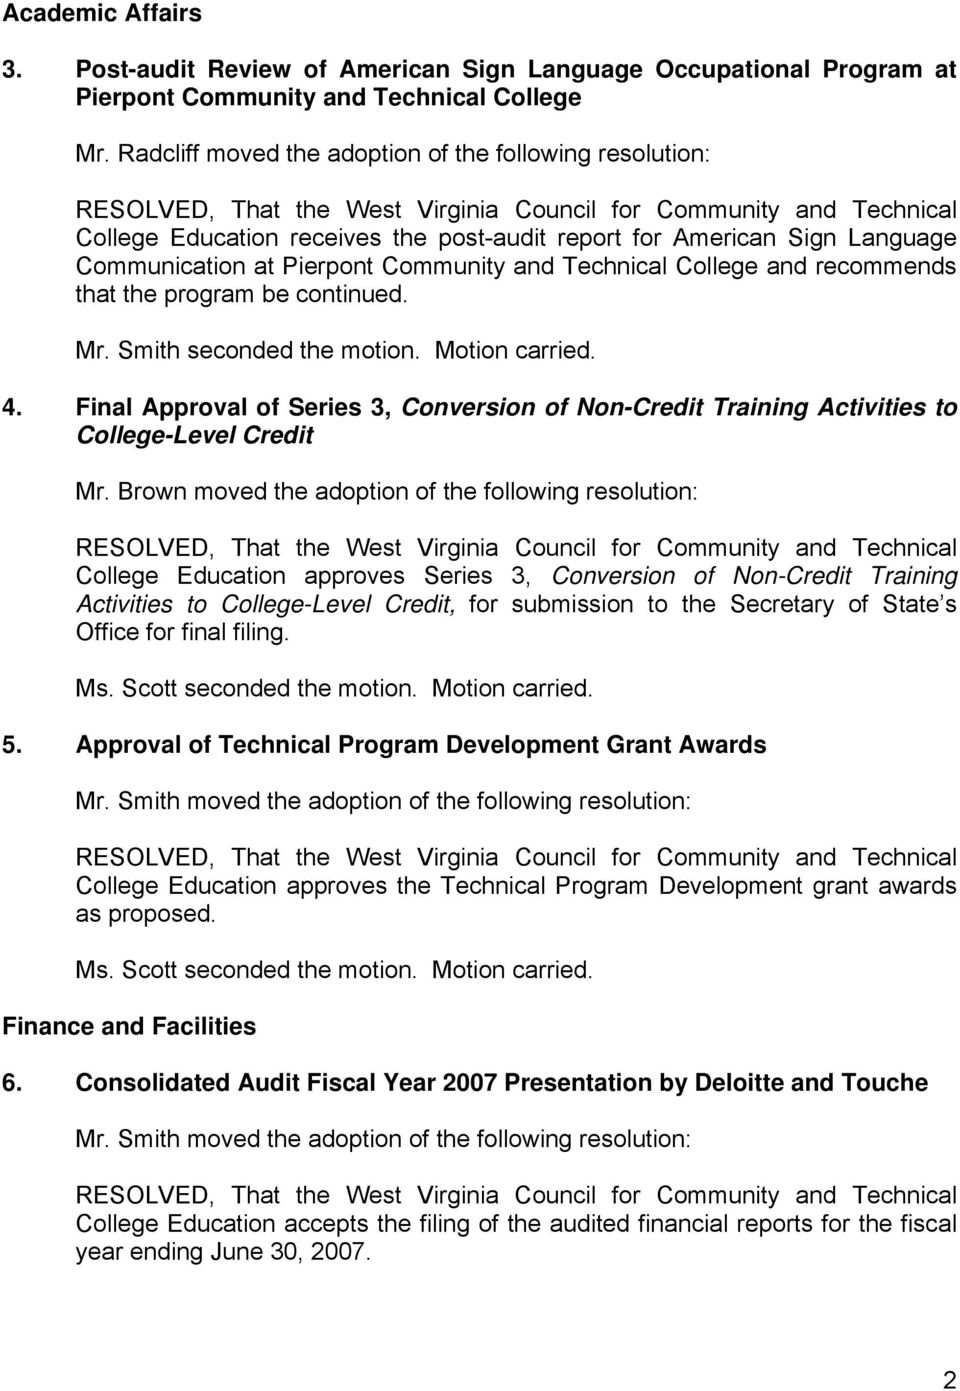 recommends that the program be continued. Mr. Smith seconded the motion. Motion carried. 4. Final Approval of Series 3, Conversion of Non-Credit Training Activities to College-Level Credit Mr.